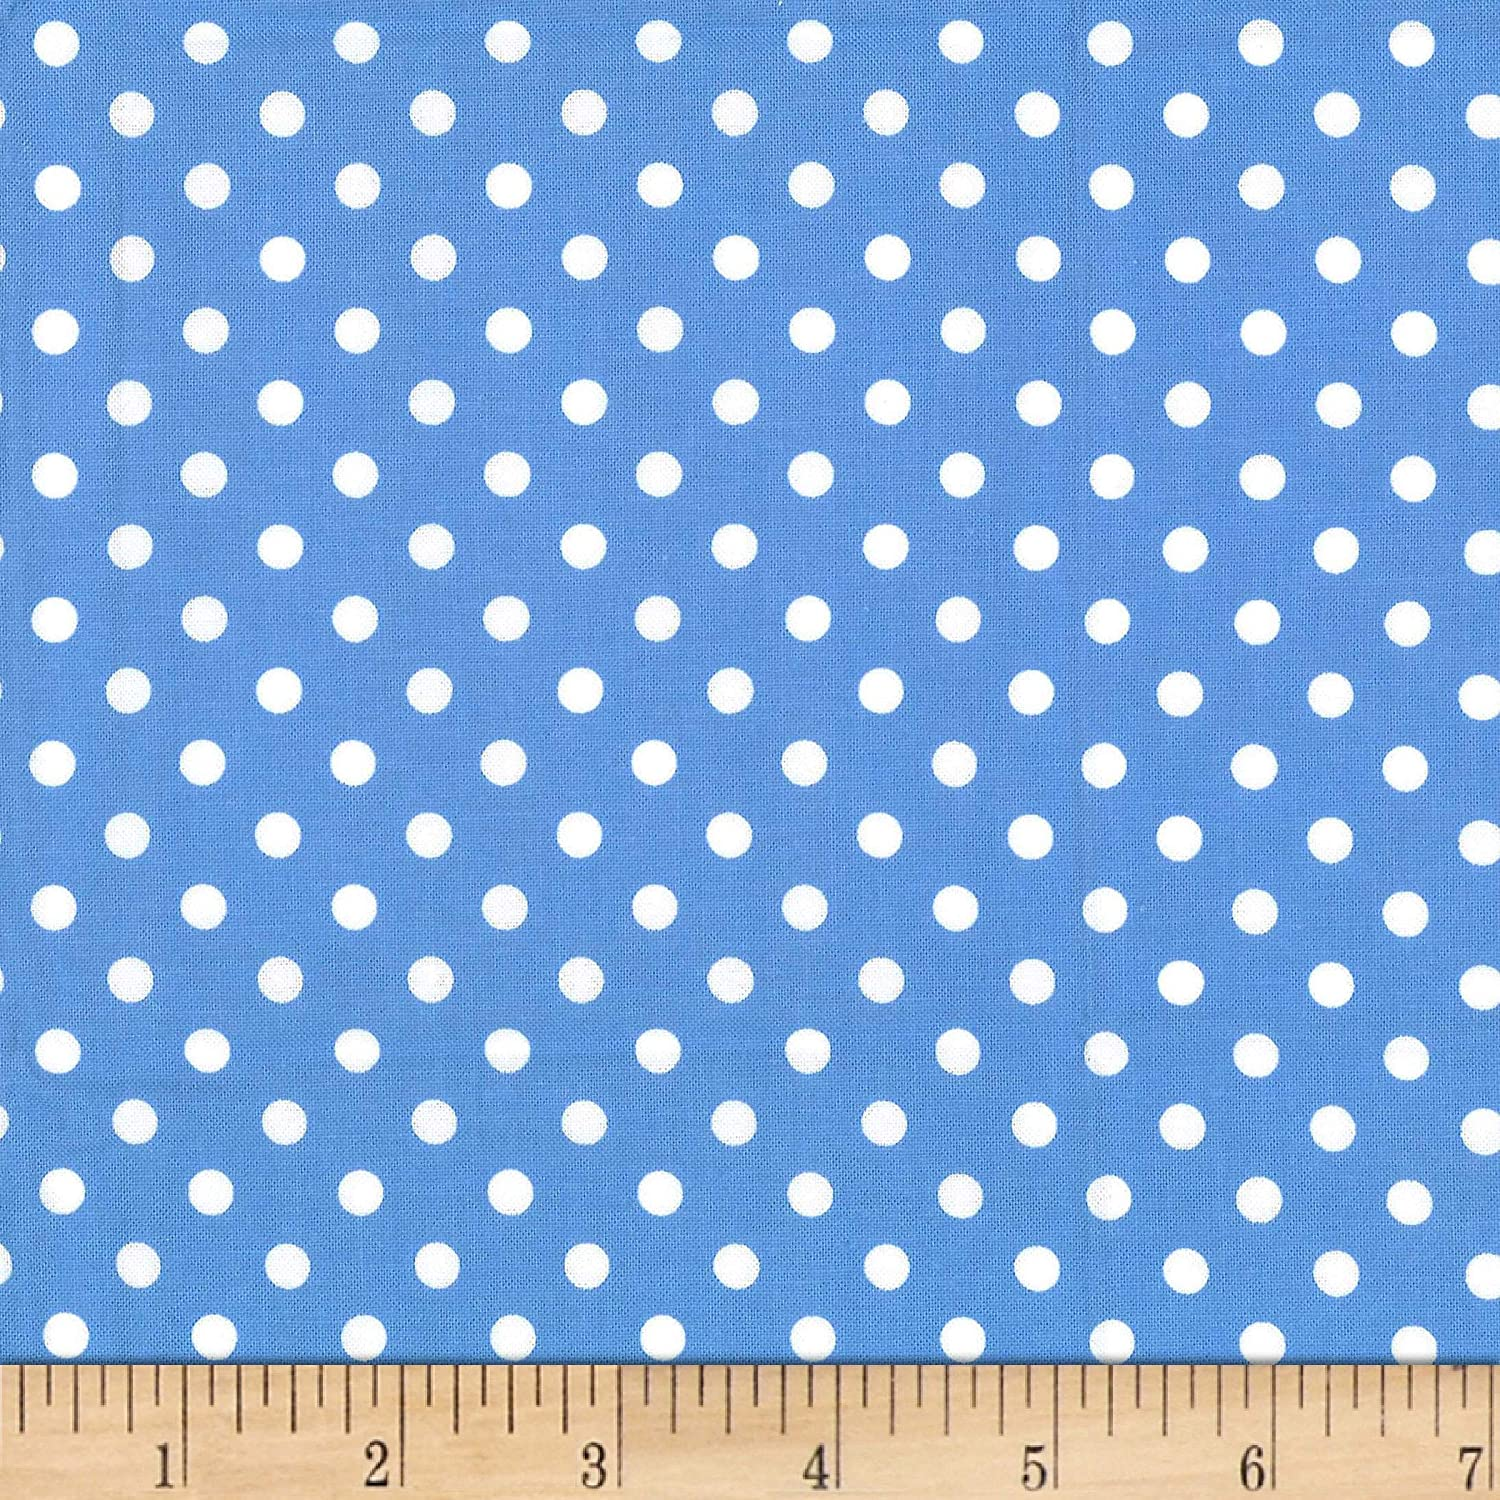 CX2490-SNDP-D 100/% Cotton Michael Miller Fabrics Dumb Dot White on White Fabric By The Yard